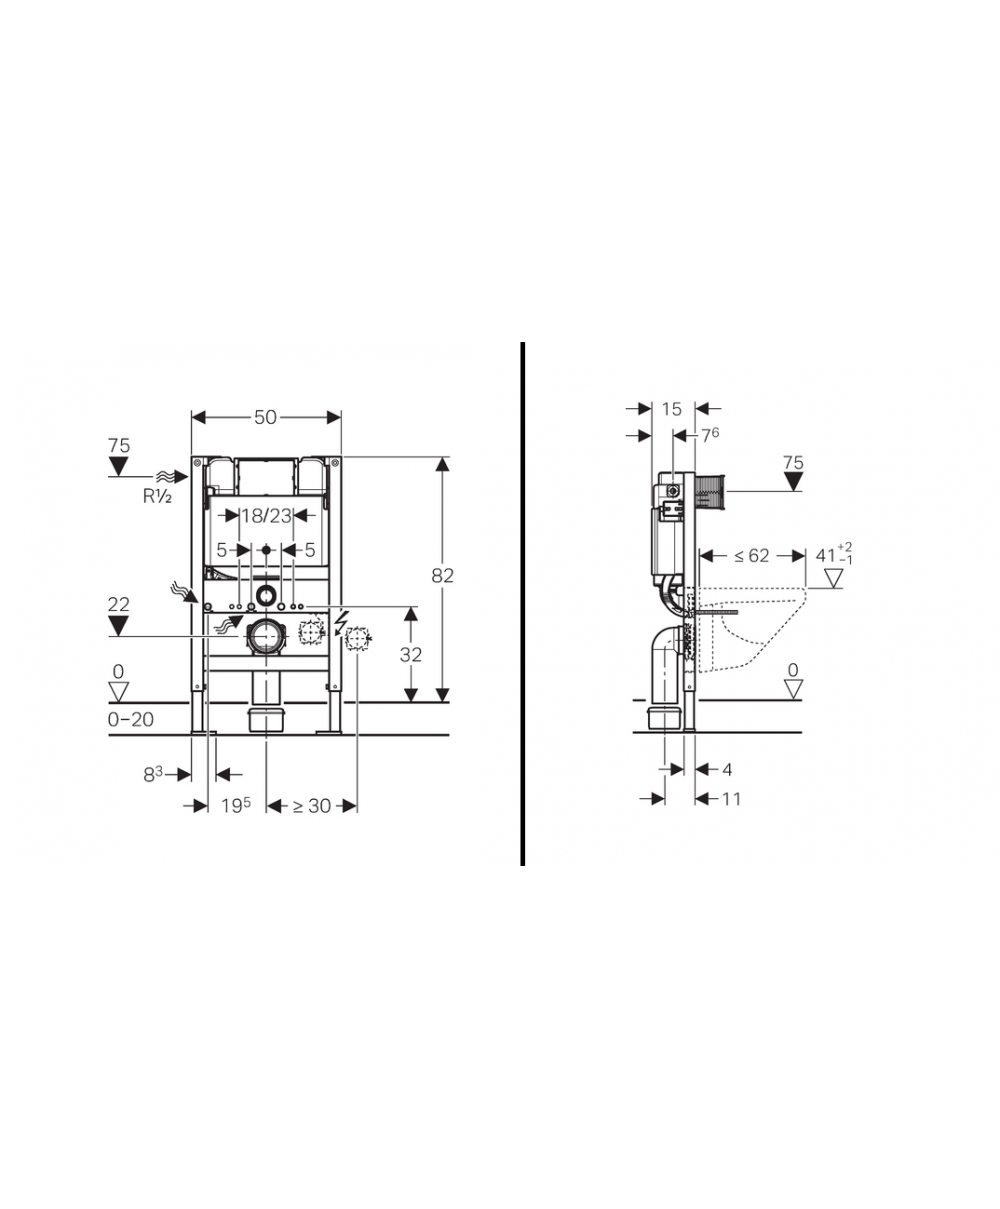 Geberit duofix frame for wall hung wc h82 with omega cistern 12cm - Geberit Duofix Frame For Wall Hung Wc H82 With Omega Cistern 12cm 6